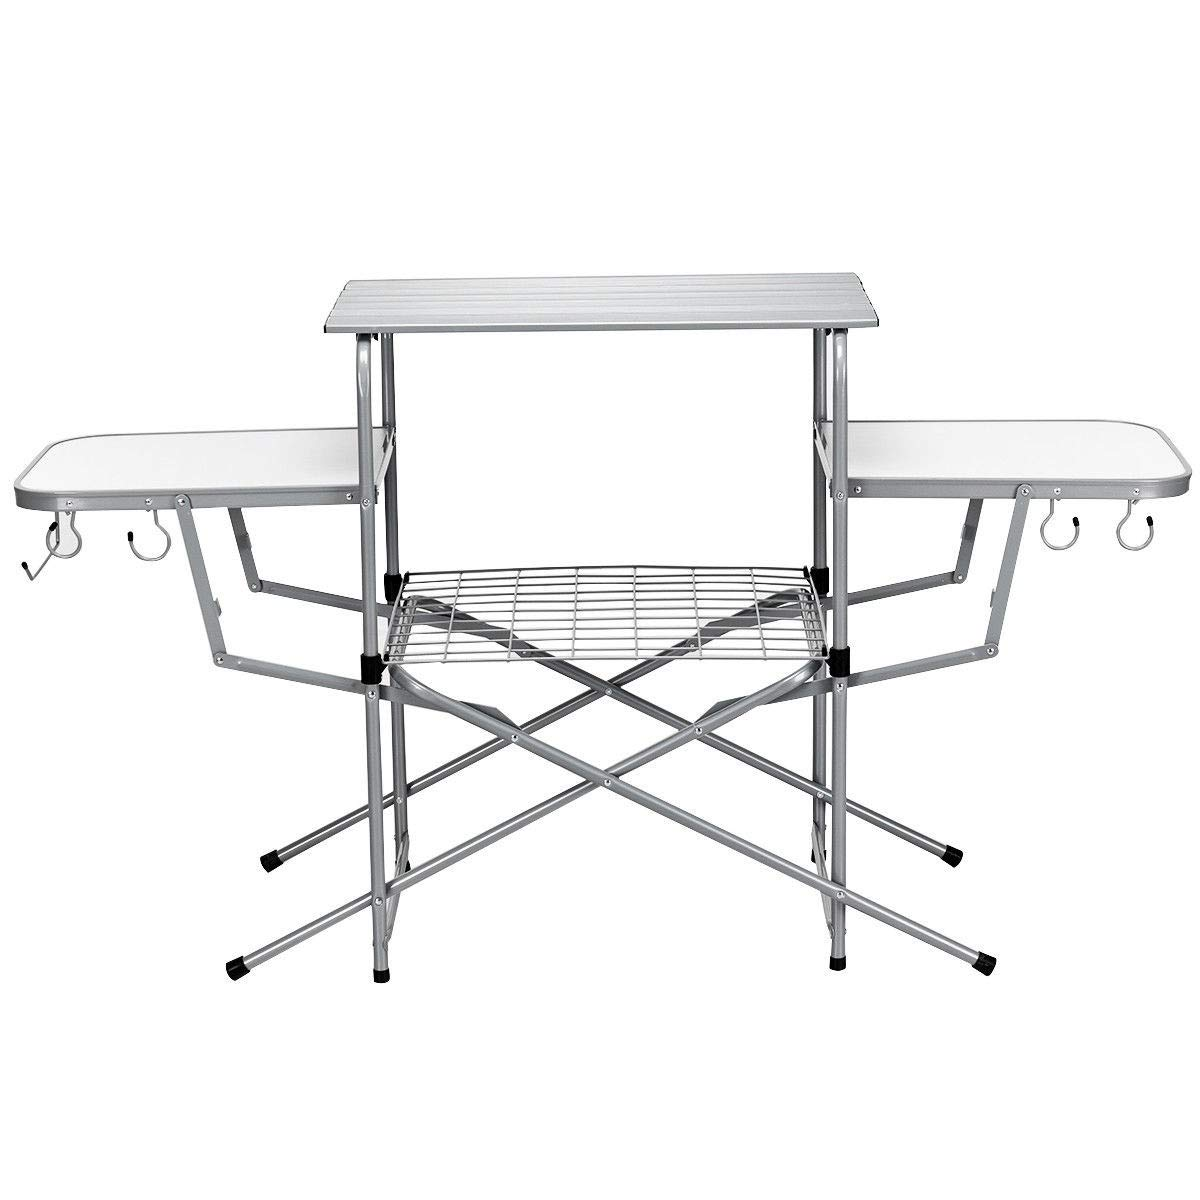 KING77777 Flexible Adjustable and Foldable Camping Outdoor Kitchen Picnic Garden Patio Grilling Stand BBQ Table with Sturdy and Durable Material